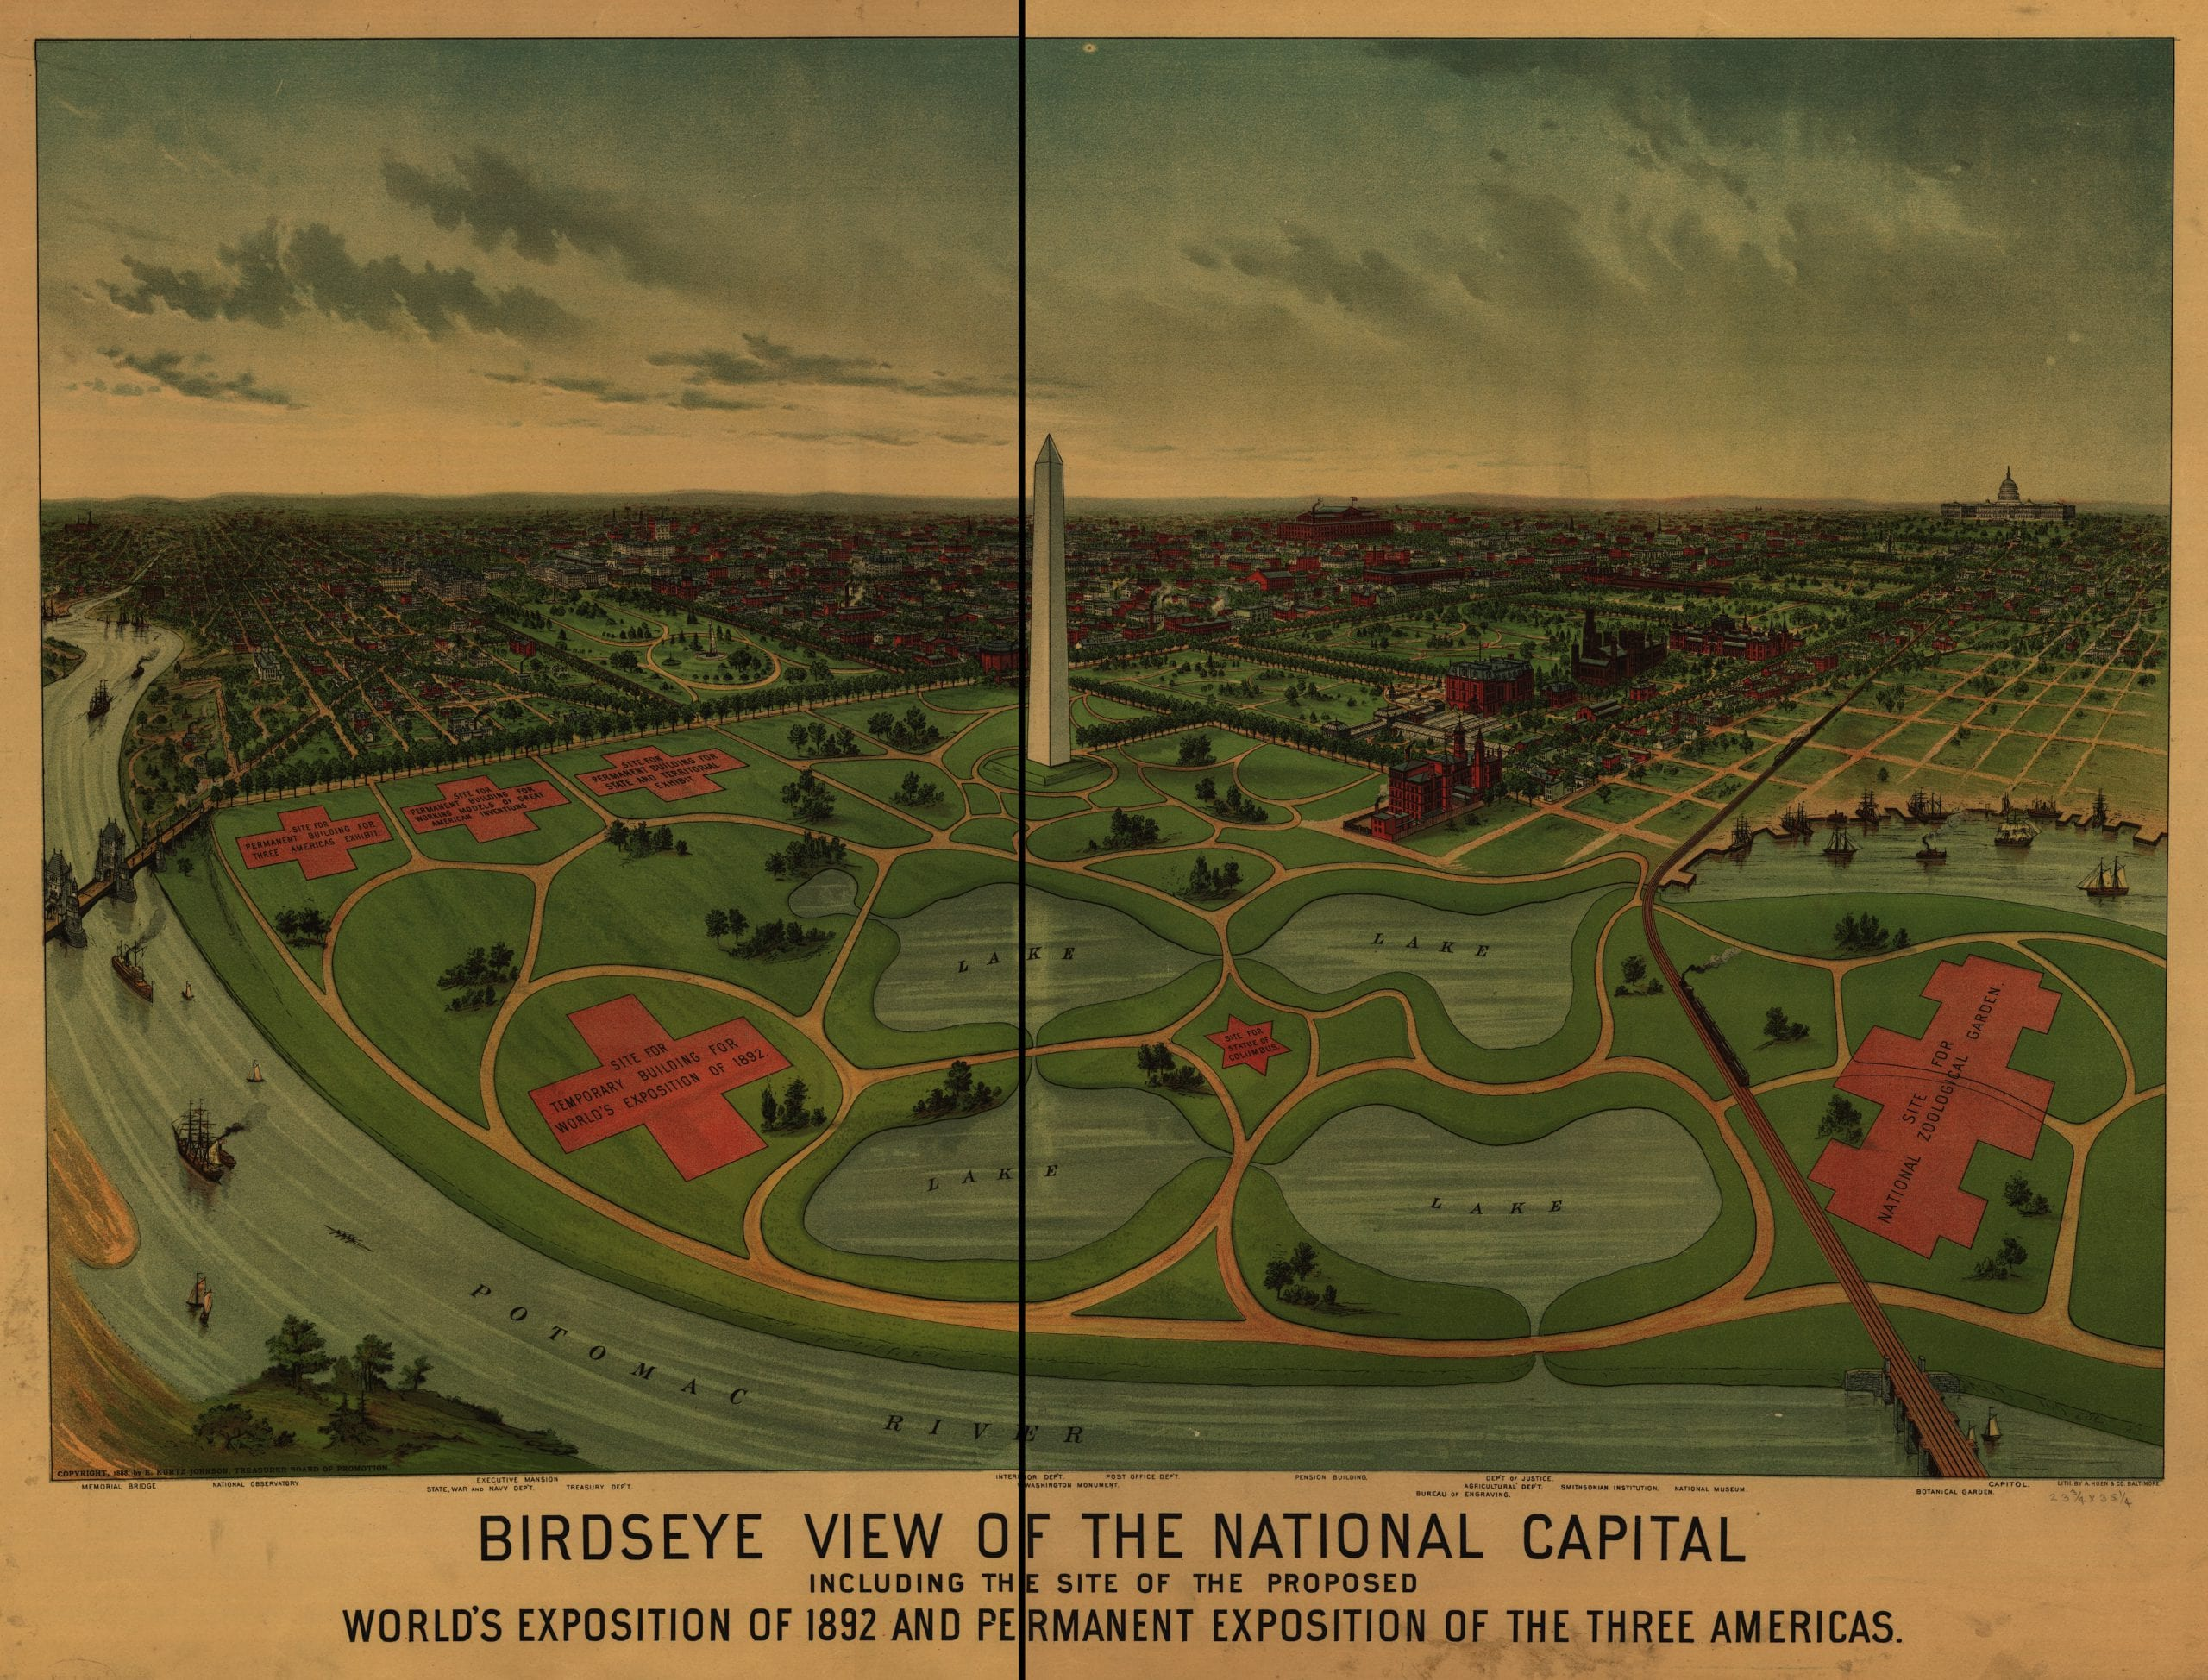 Birdseye view of the National Capital, including the site of the proposed World's Exposition of 1892 and Permanent Exposition of the Three Americas